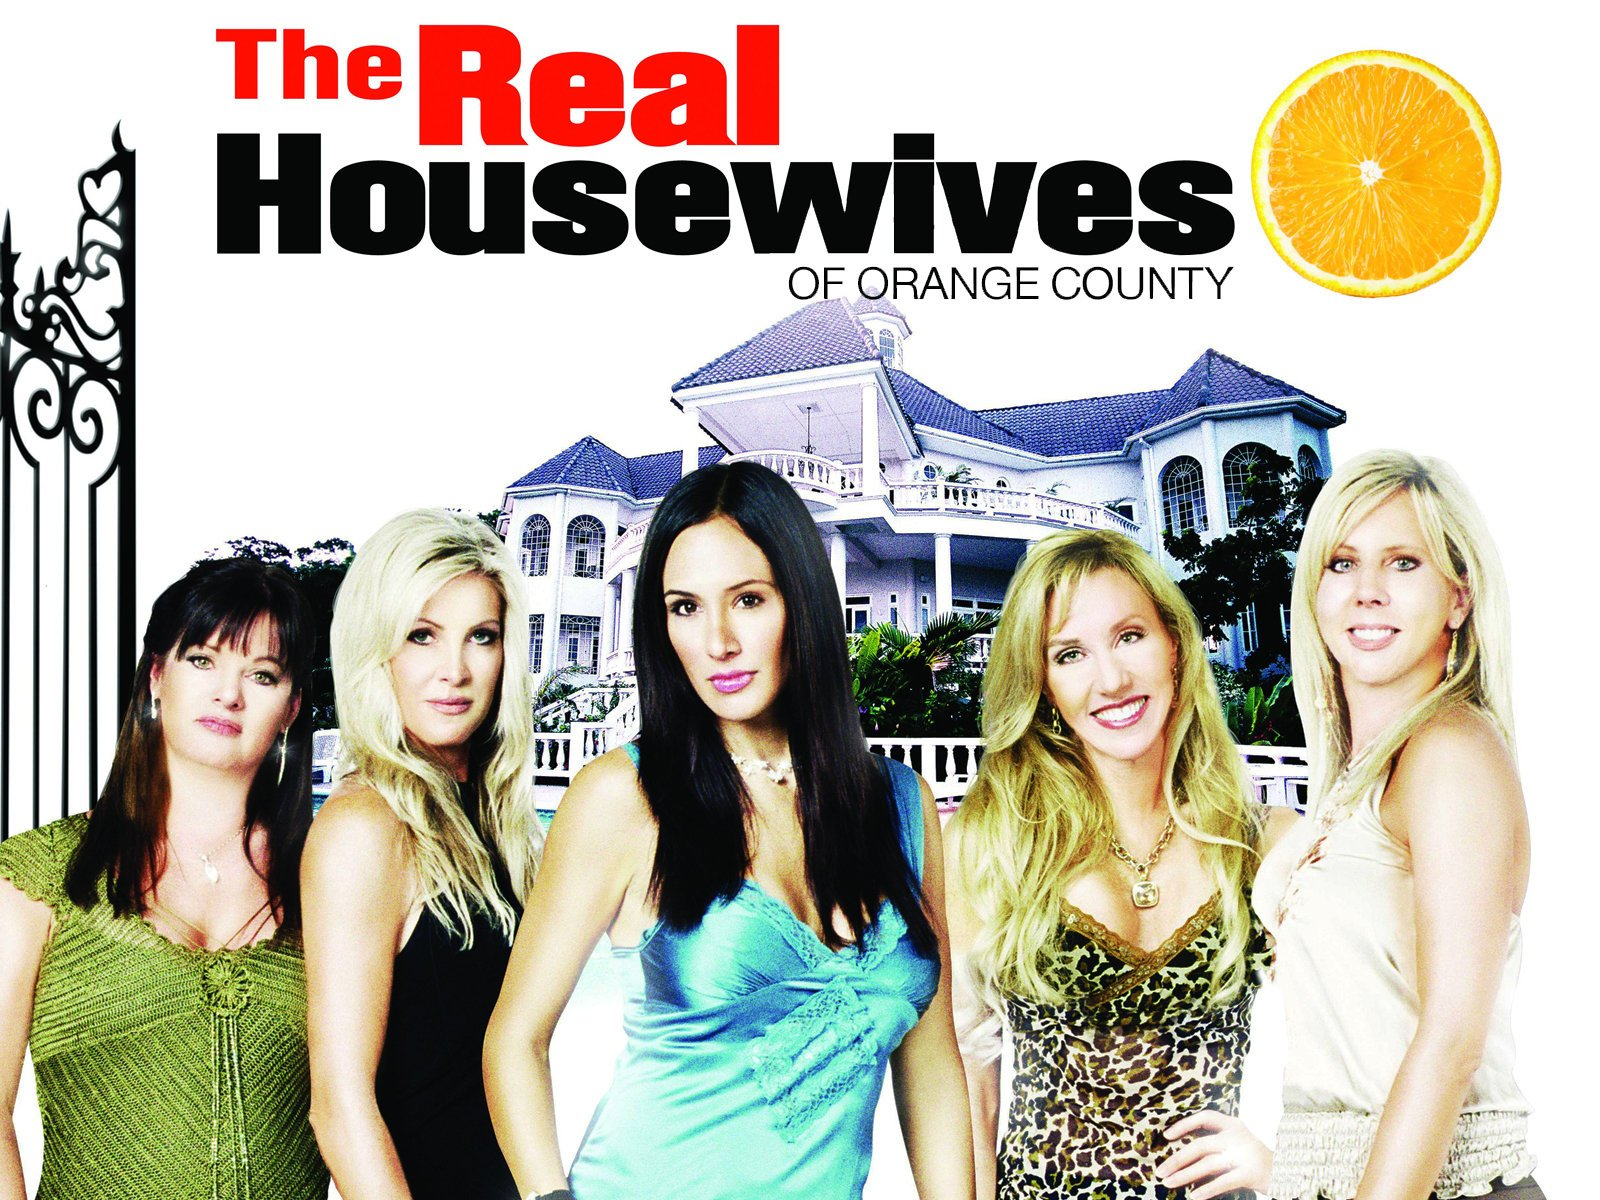 The Real Housewives of Orange County - Season 1 : Watch online now with Amazon Instant Video: Kimberly Bryant, Jo De La Rosa, Lauri Peterson, Jeana Keough, ...